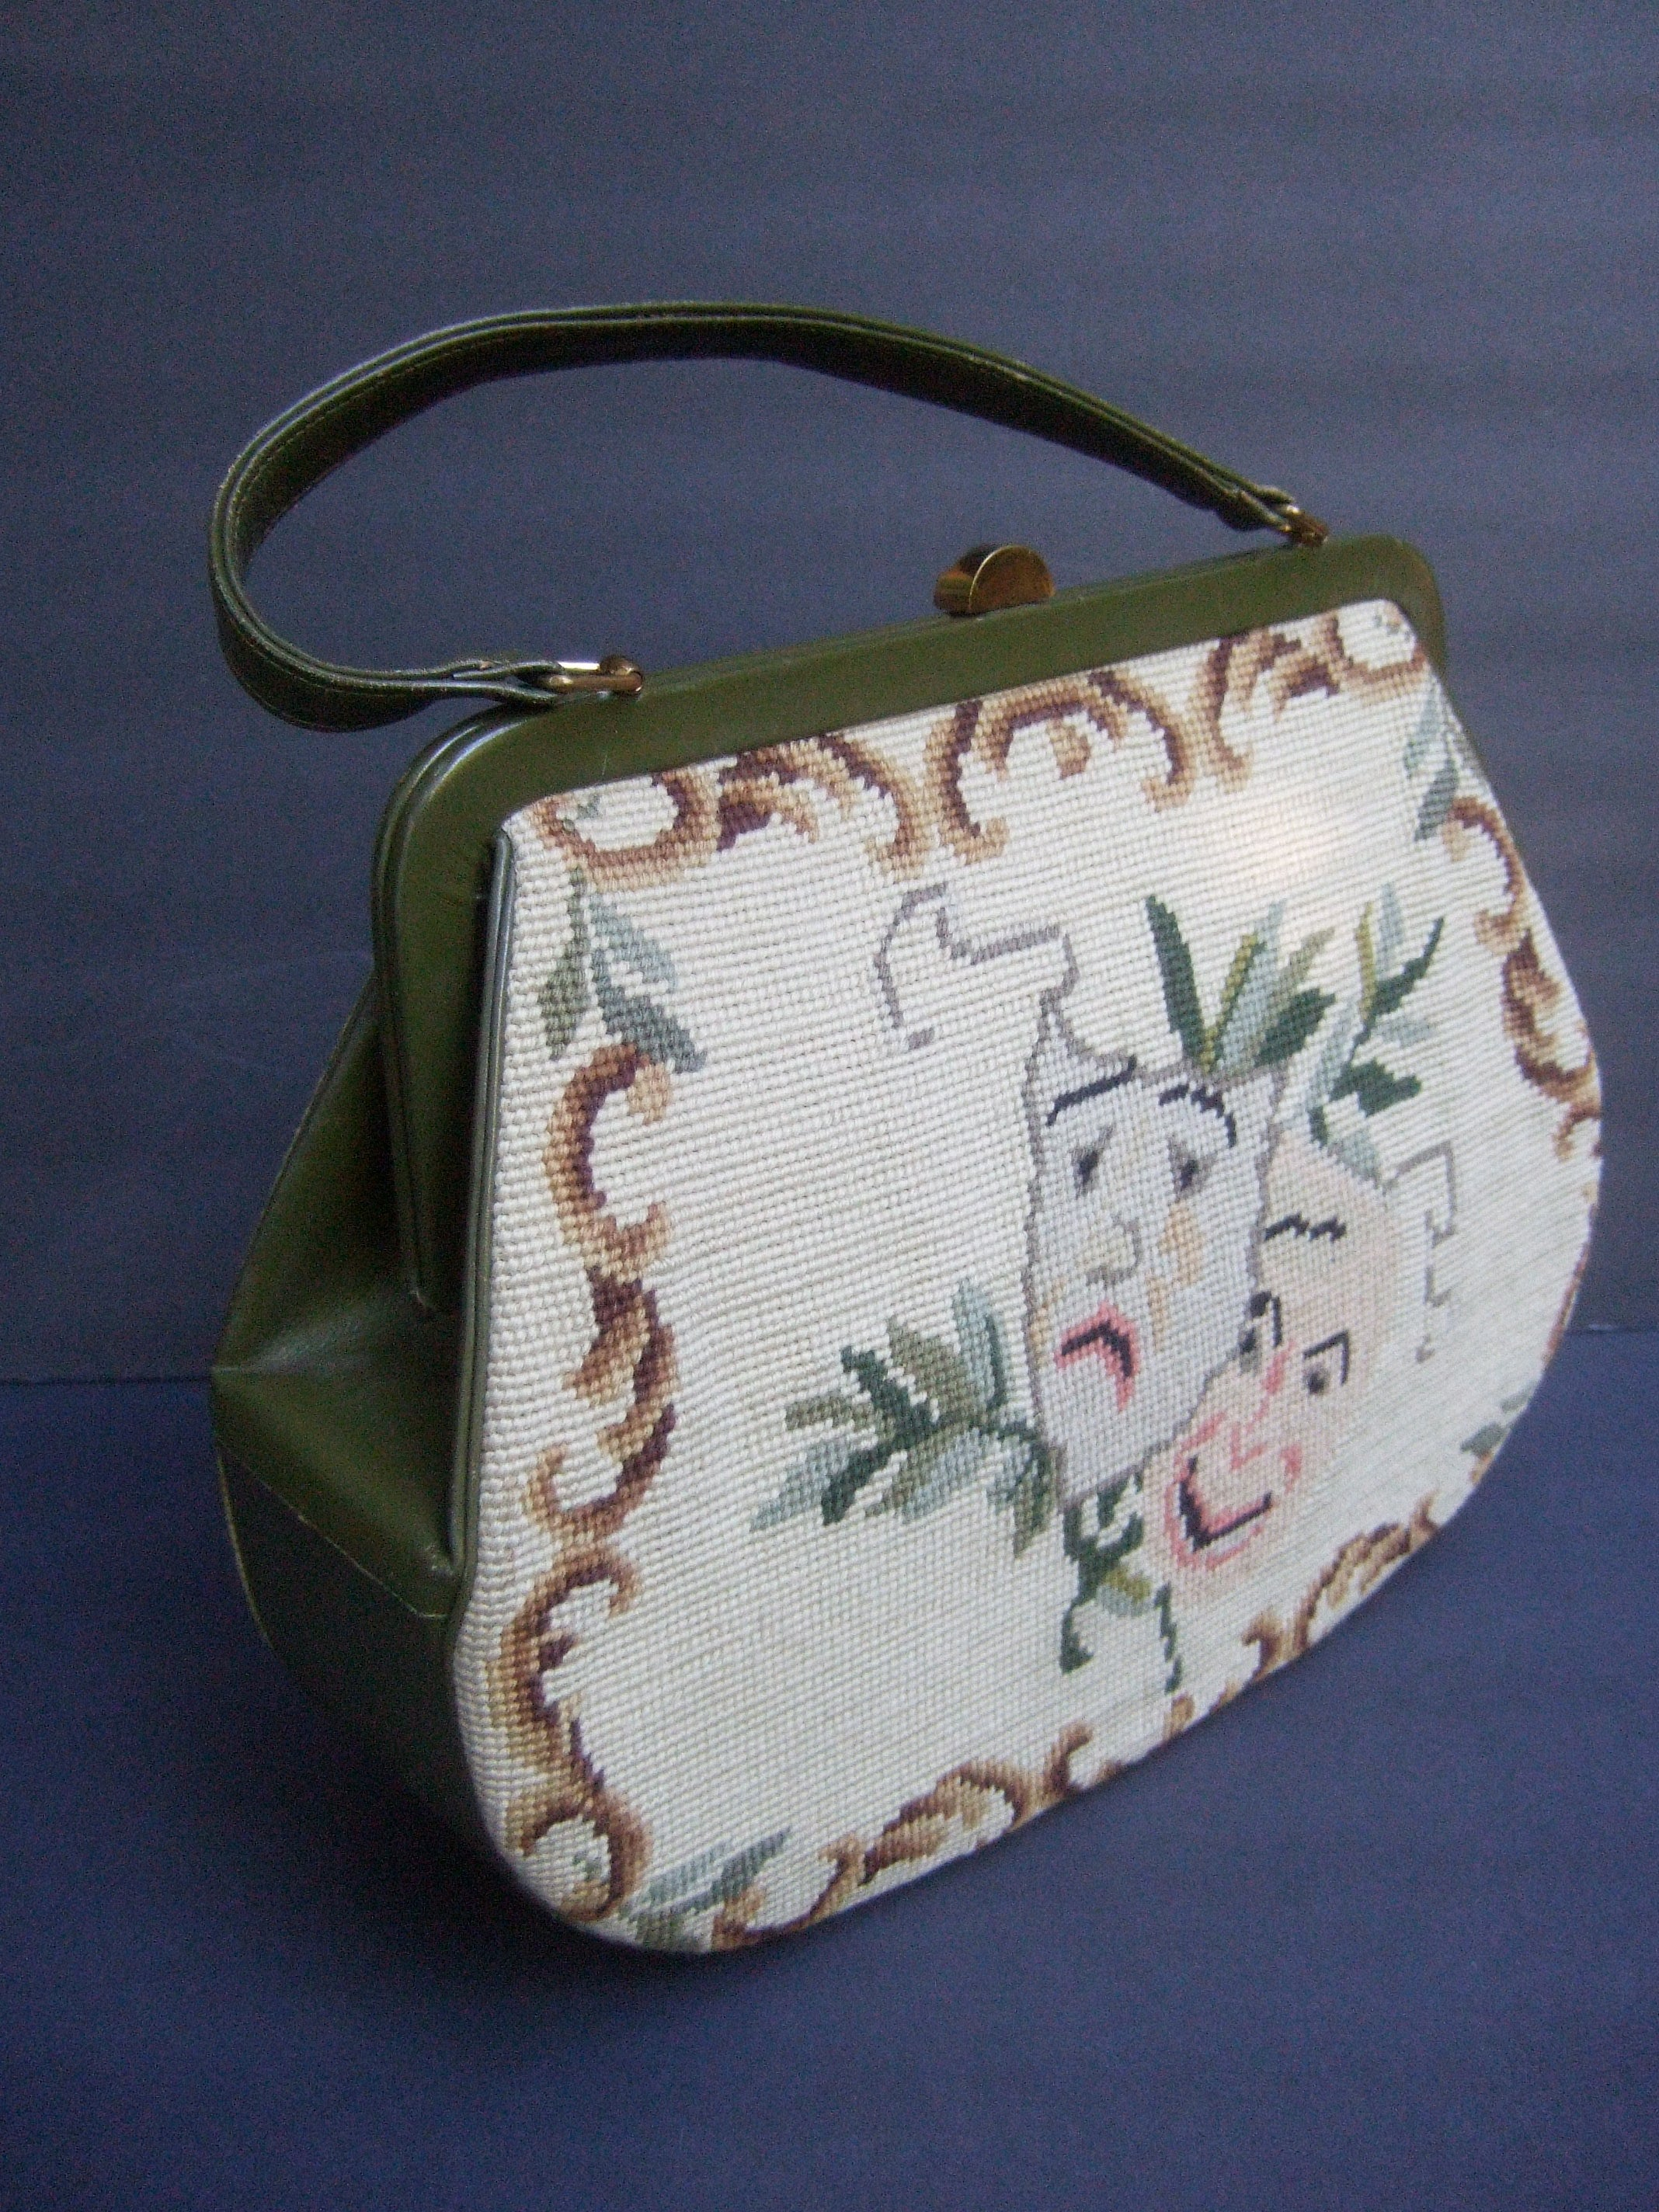 1stdibs Unique Thespian Needlepoint Comedy And Tragedy Handbag C 1960 CgBYVf1